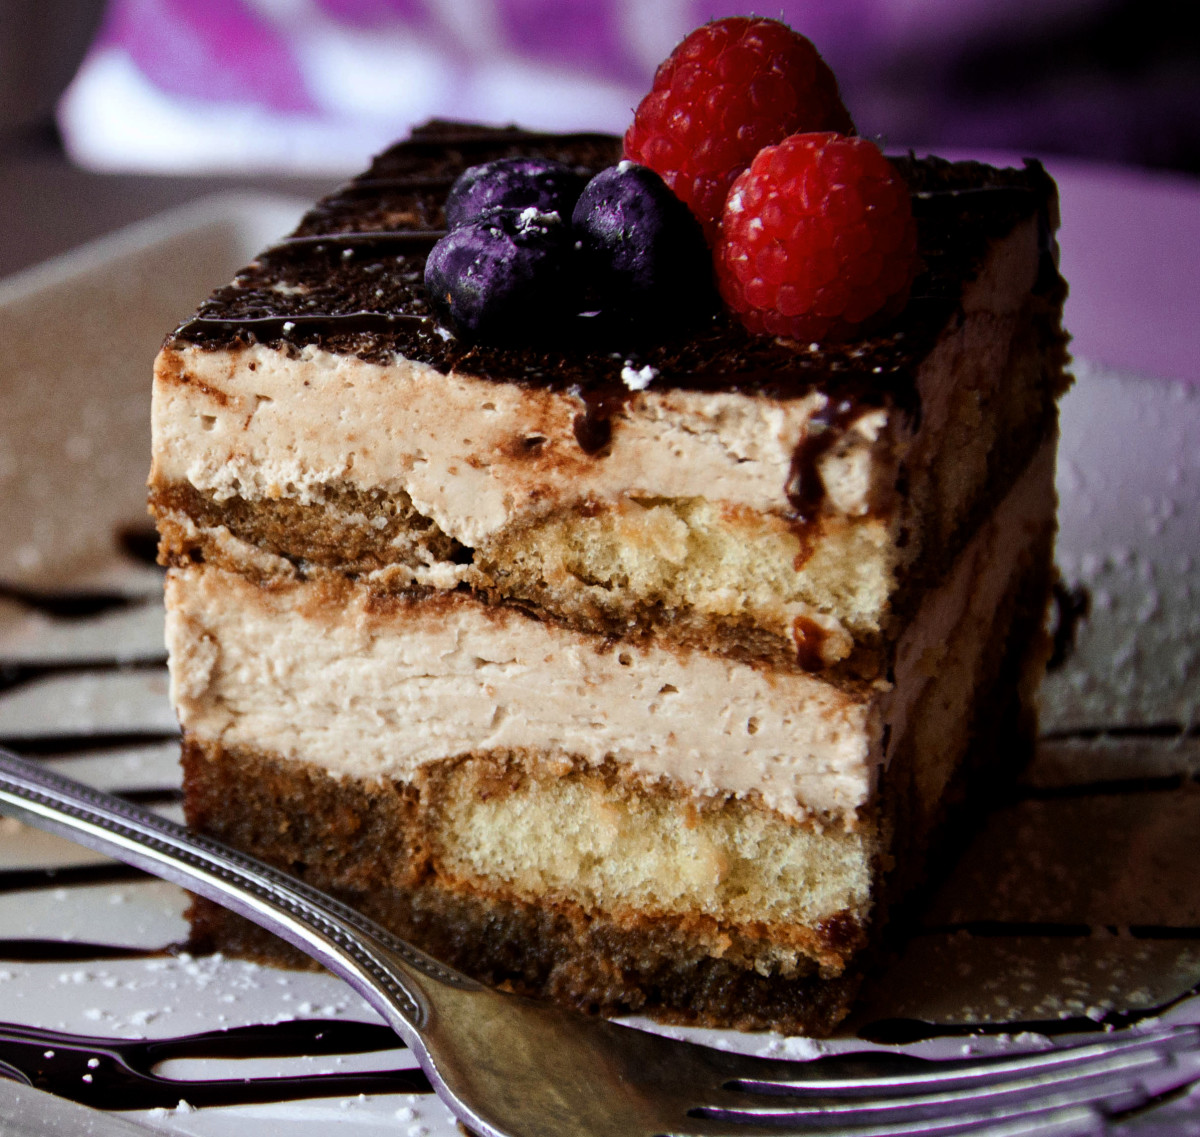 By Alexis Fam - Flickr: Tiramisu, CC BY 2.0, https://commons.wikimedia.org/w/index.php?curid=18859011 modyfikacja: NOM